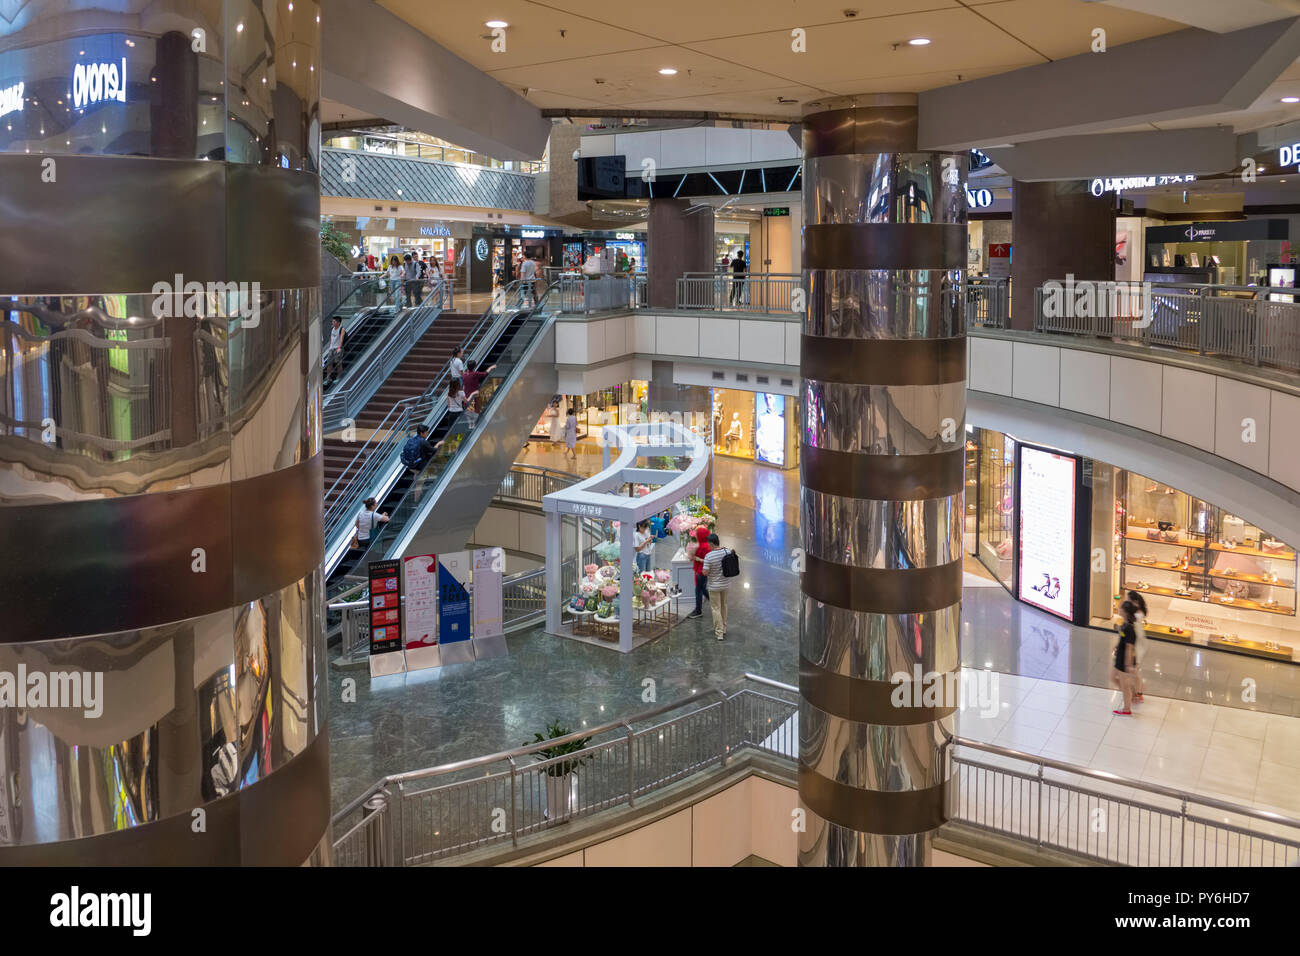 Inside the Super Brand Mall shopping mall in Pudong, Shanghai, China, Asia - Stock Image